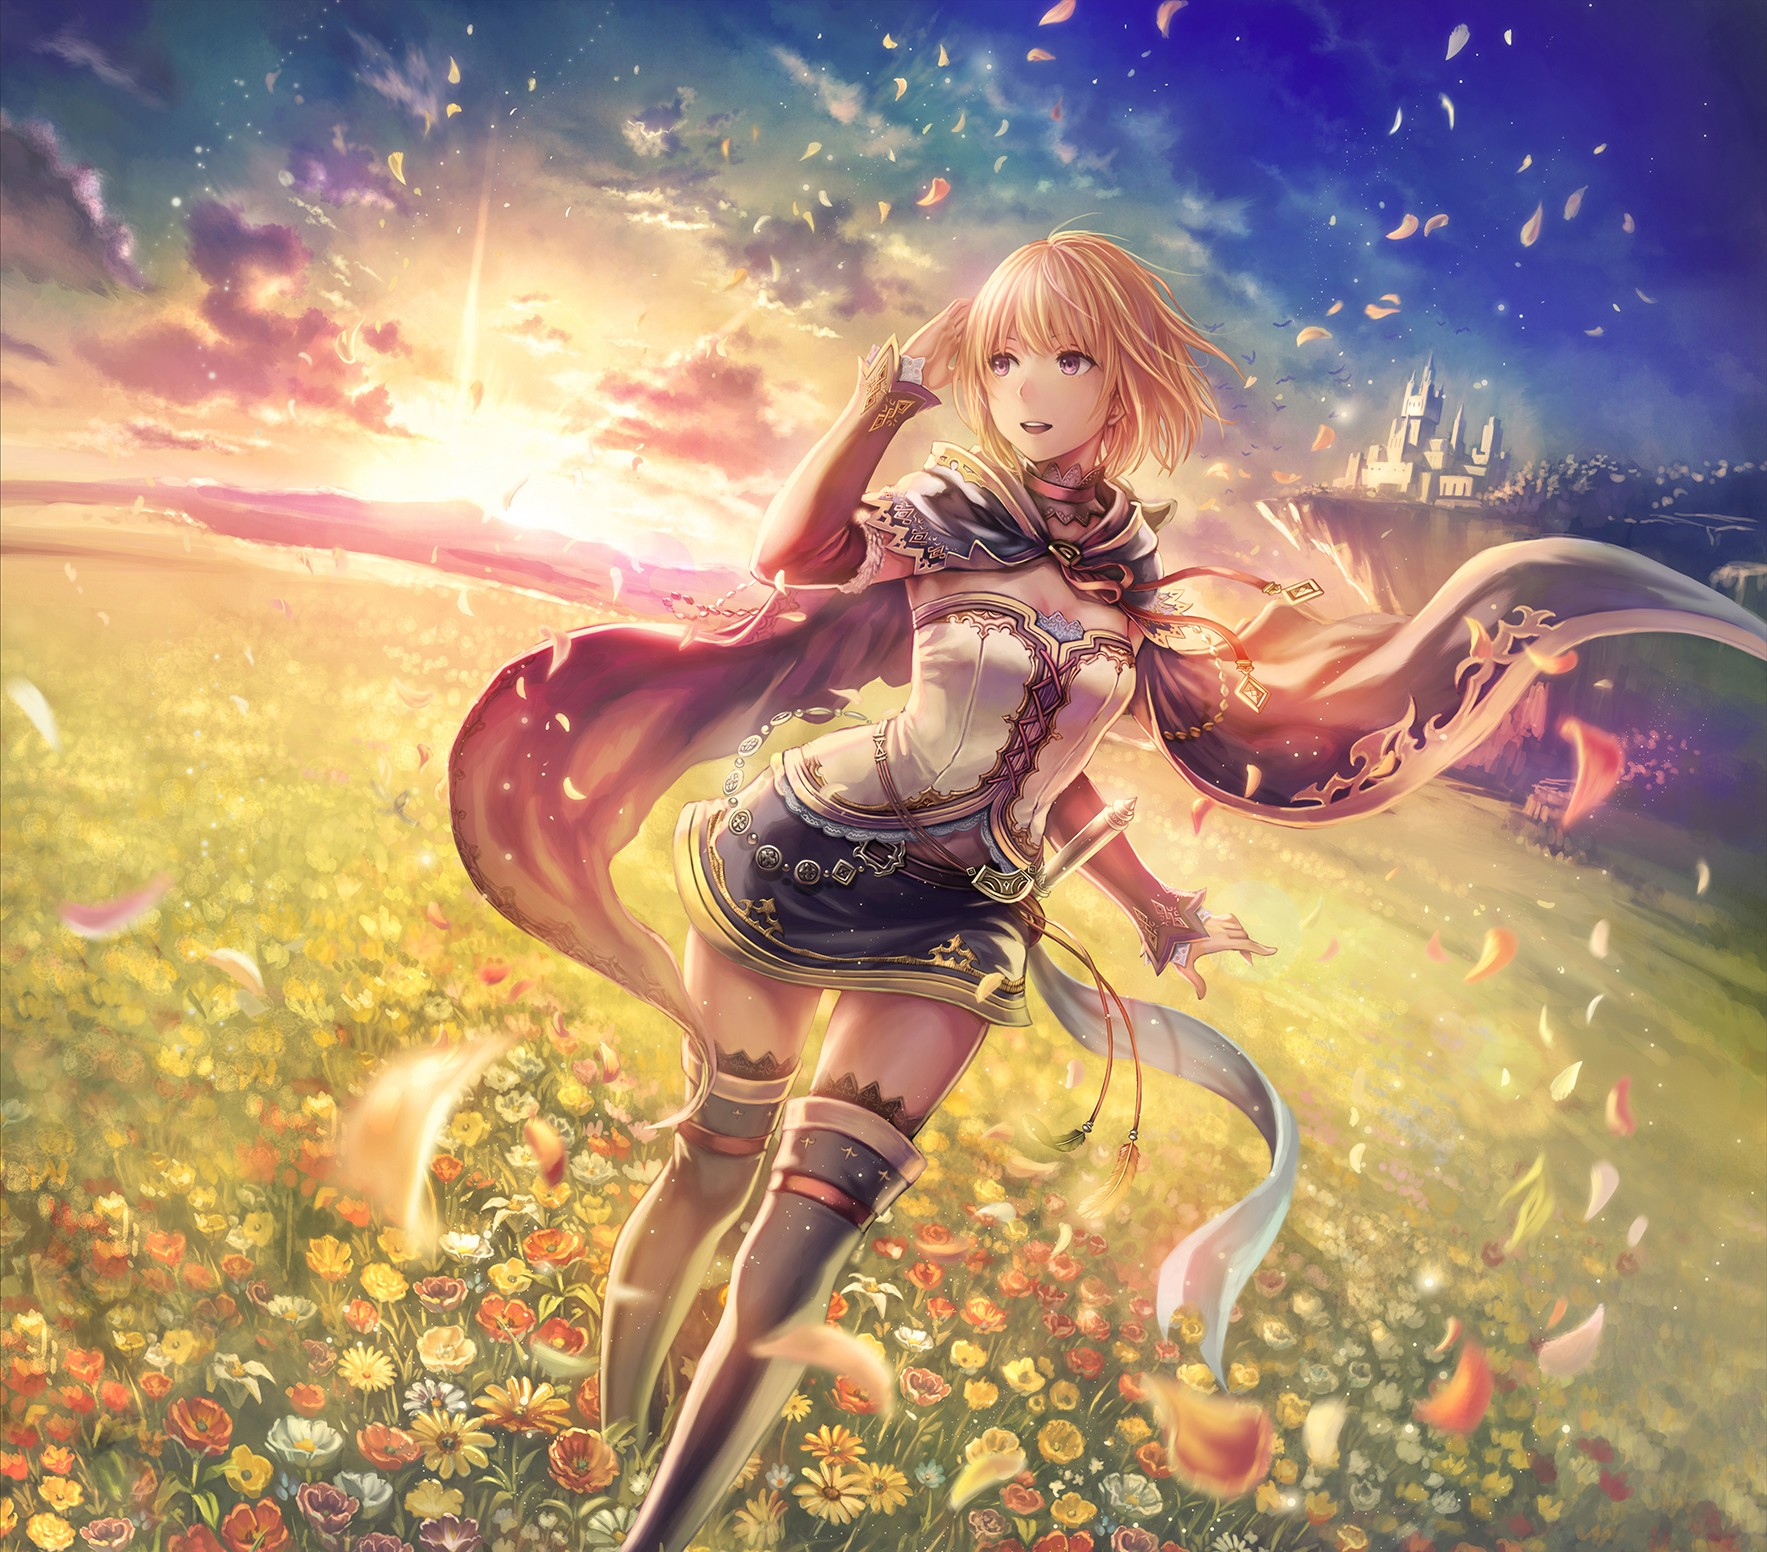 sunset, leaves, anime girls, flowers, castle, original characters